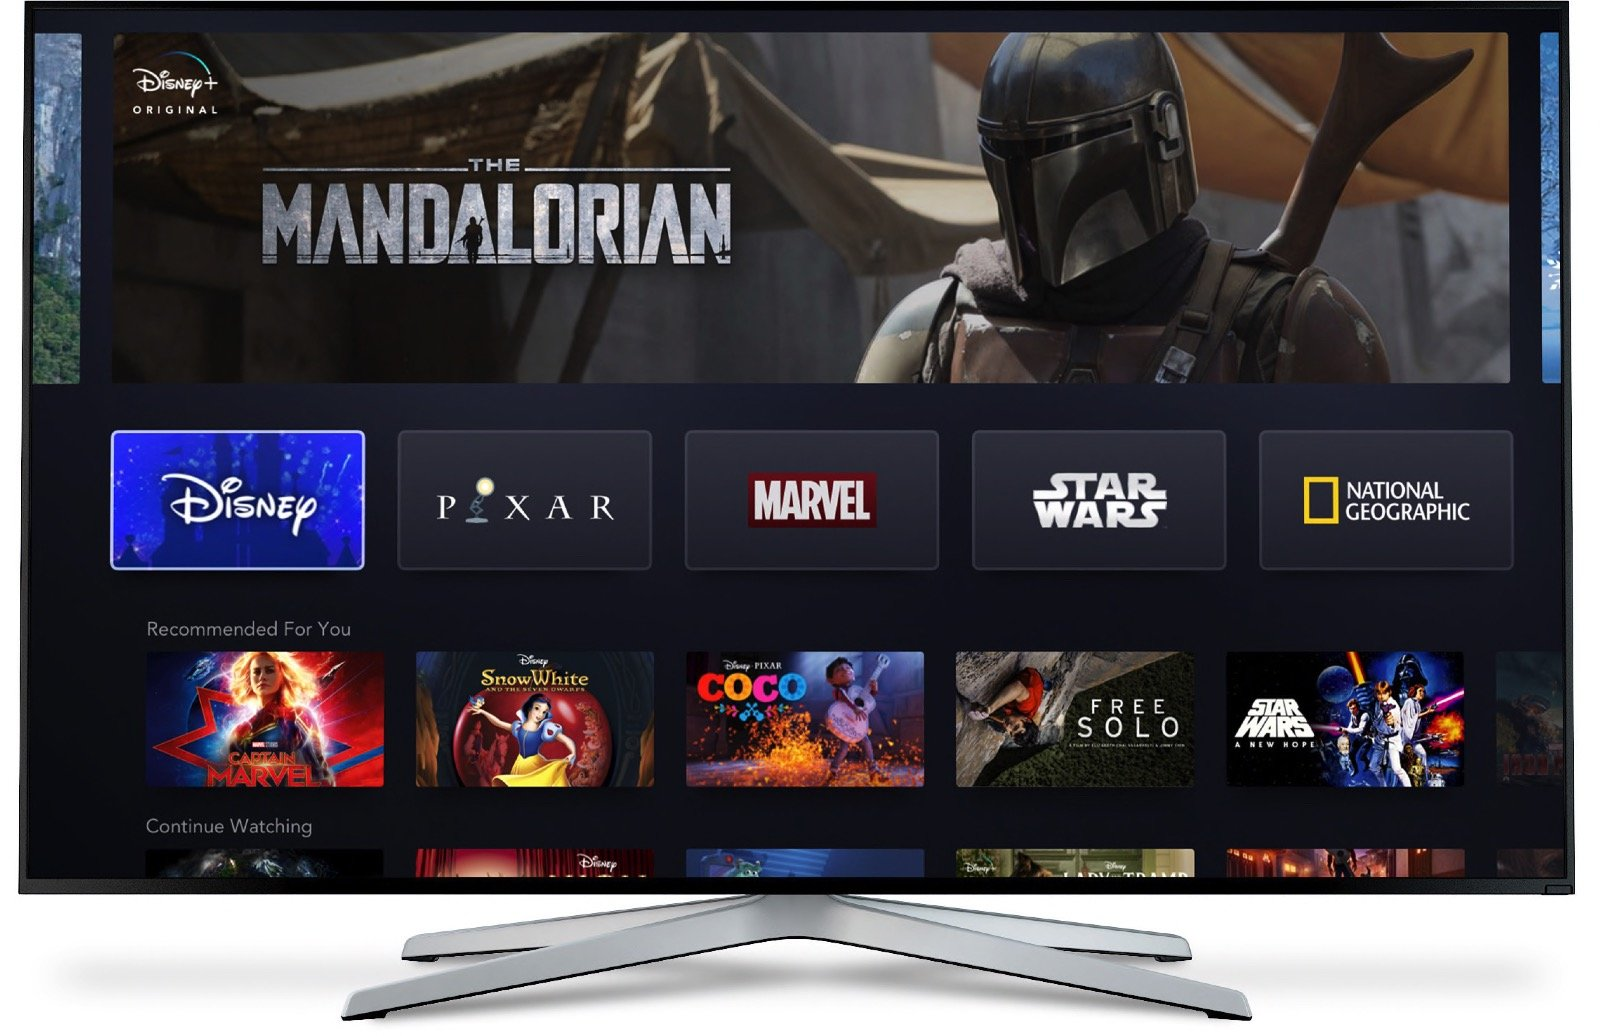 Disney+ will Stream through Apps for iOS, Android, Apple TV